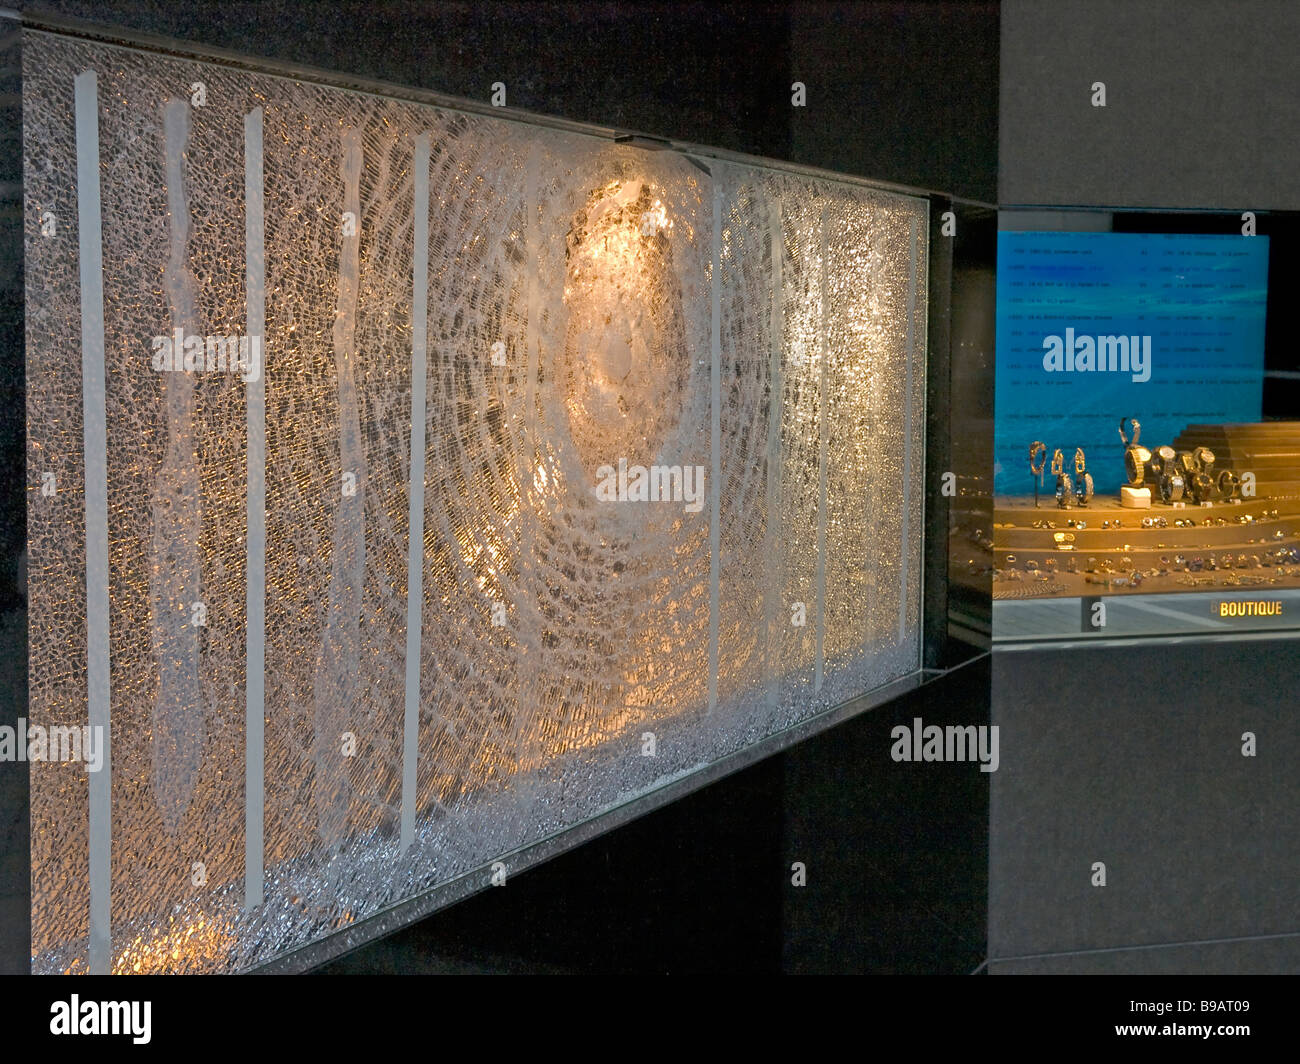 burglary wrecked broken glass plates of a display of a jewelry boutique for luxery noble ware and articles in Frankfurt - Stock Image